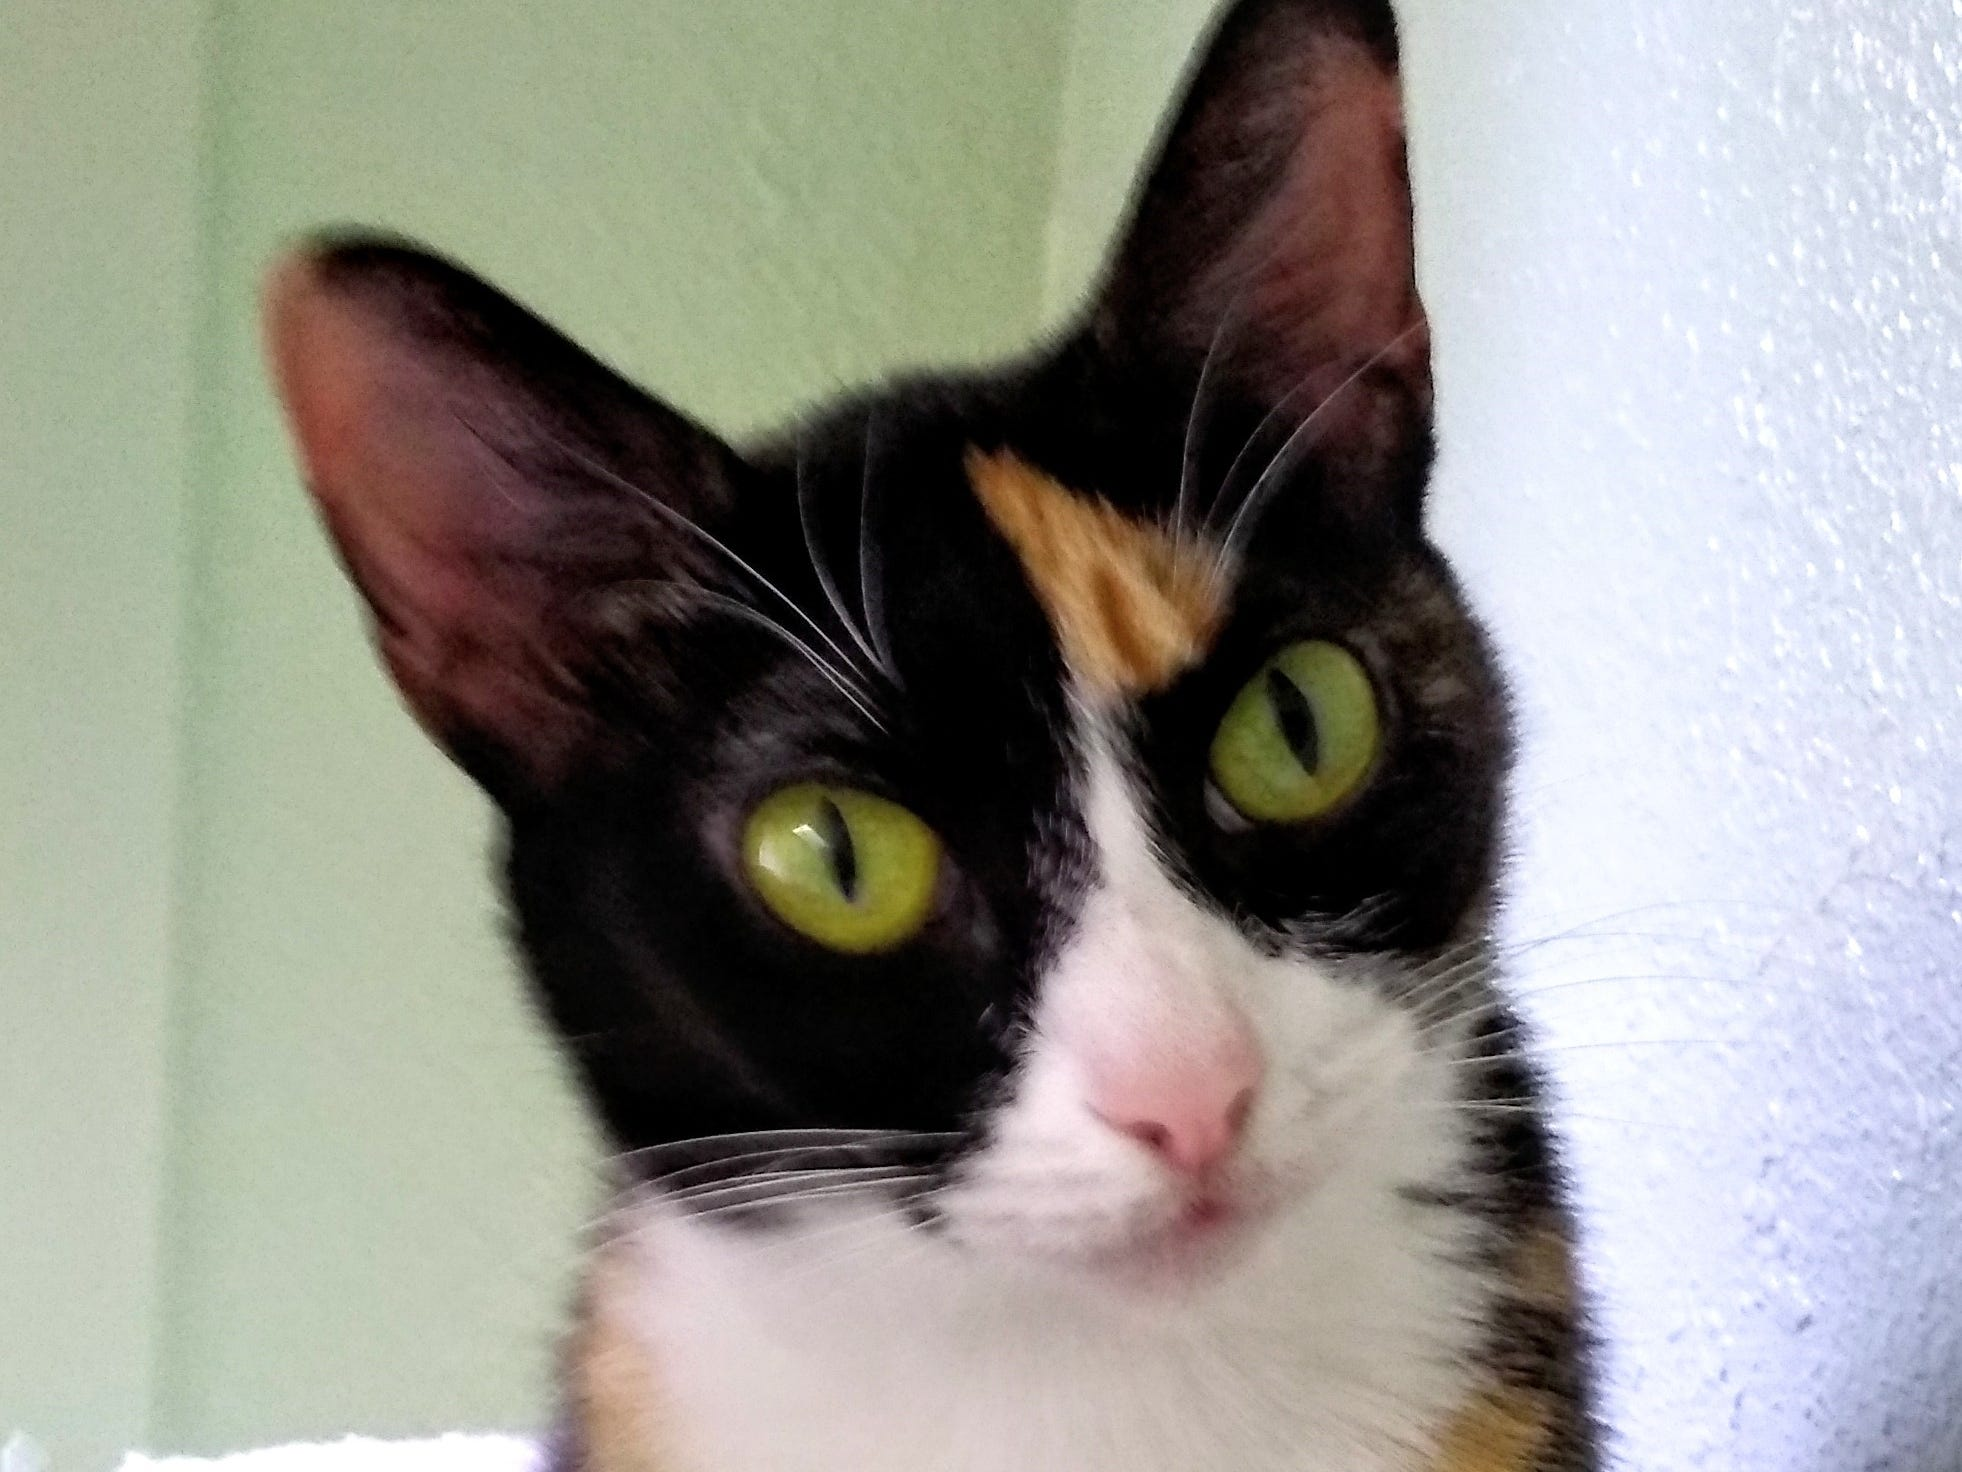 Little One is a 4-year-old beautiful calico. Little One is friendly, affectionate and mellow. She likes cats and children 10 and older. No dogs, please. For more information, visit www.sfof.org or call 503-362-5611.